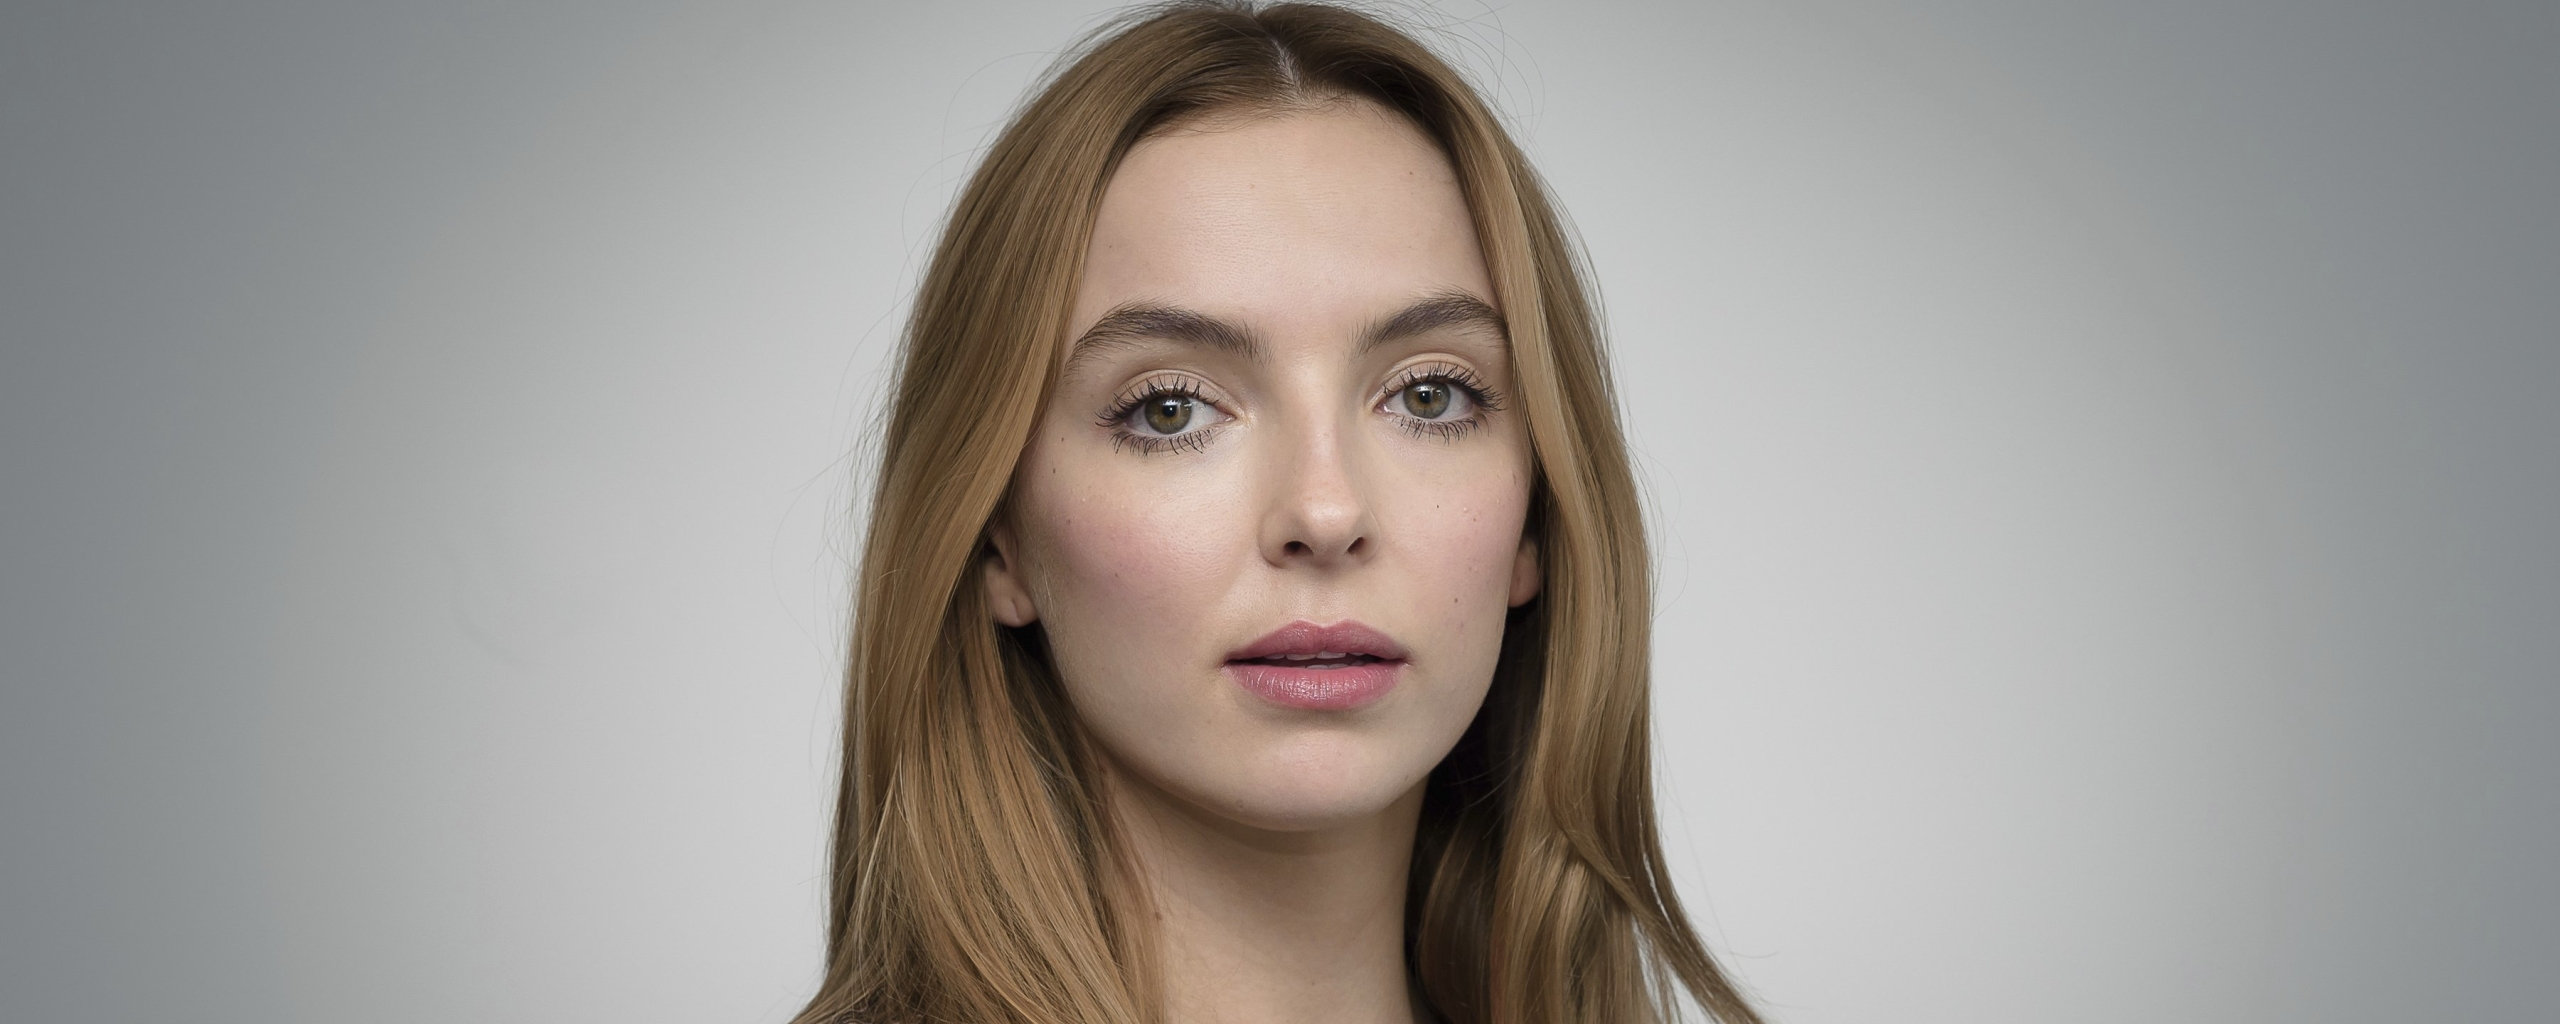 Download Jodie Comer Killing Eve Actress 1024x600 ...